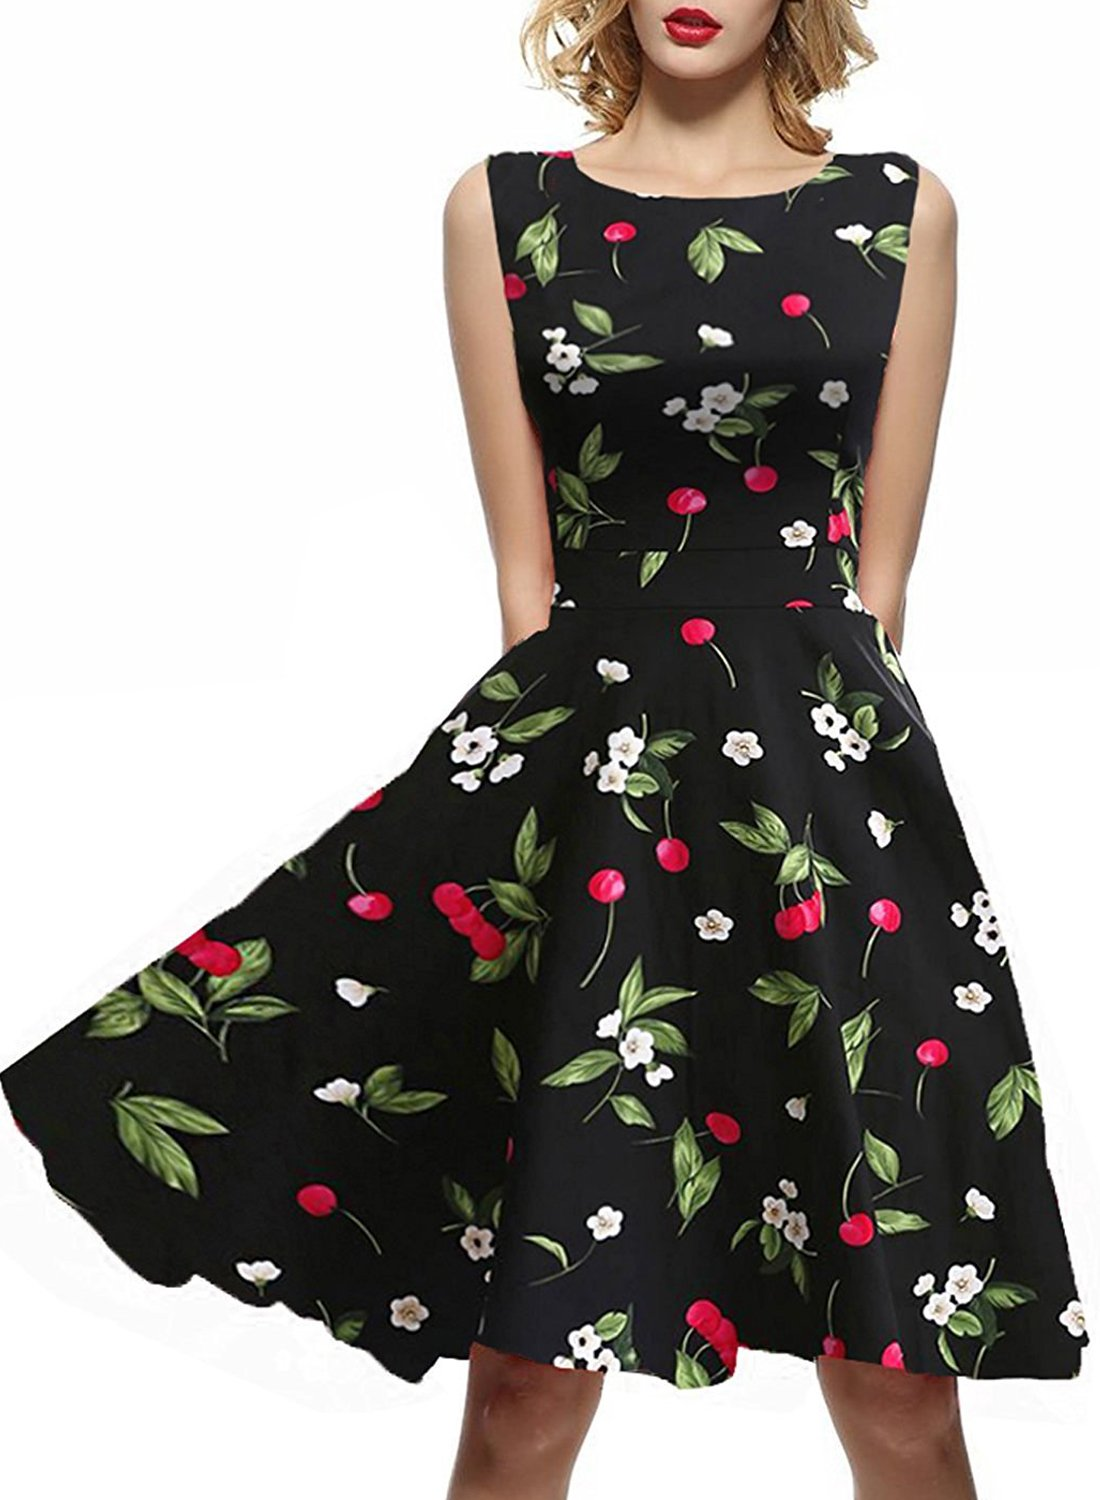 0825b94aee71 Galleon - IHOT Vintage 1950 s Floral Spring Garden Party Picnic Dress Party  Cocktail Dress For Women Black Floral Medium